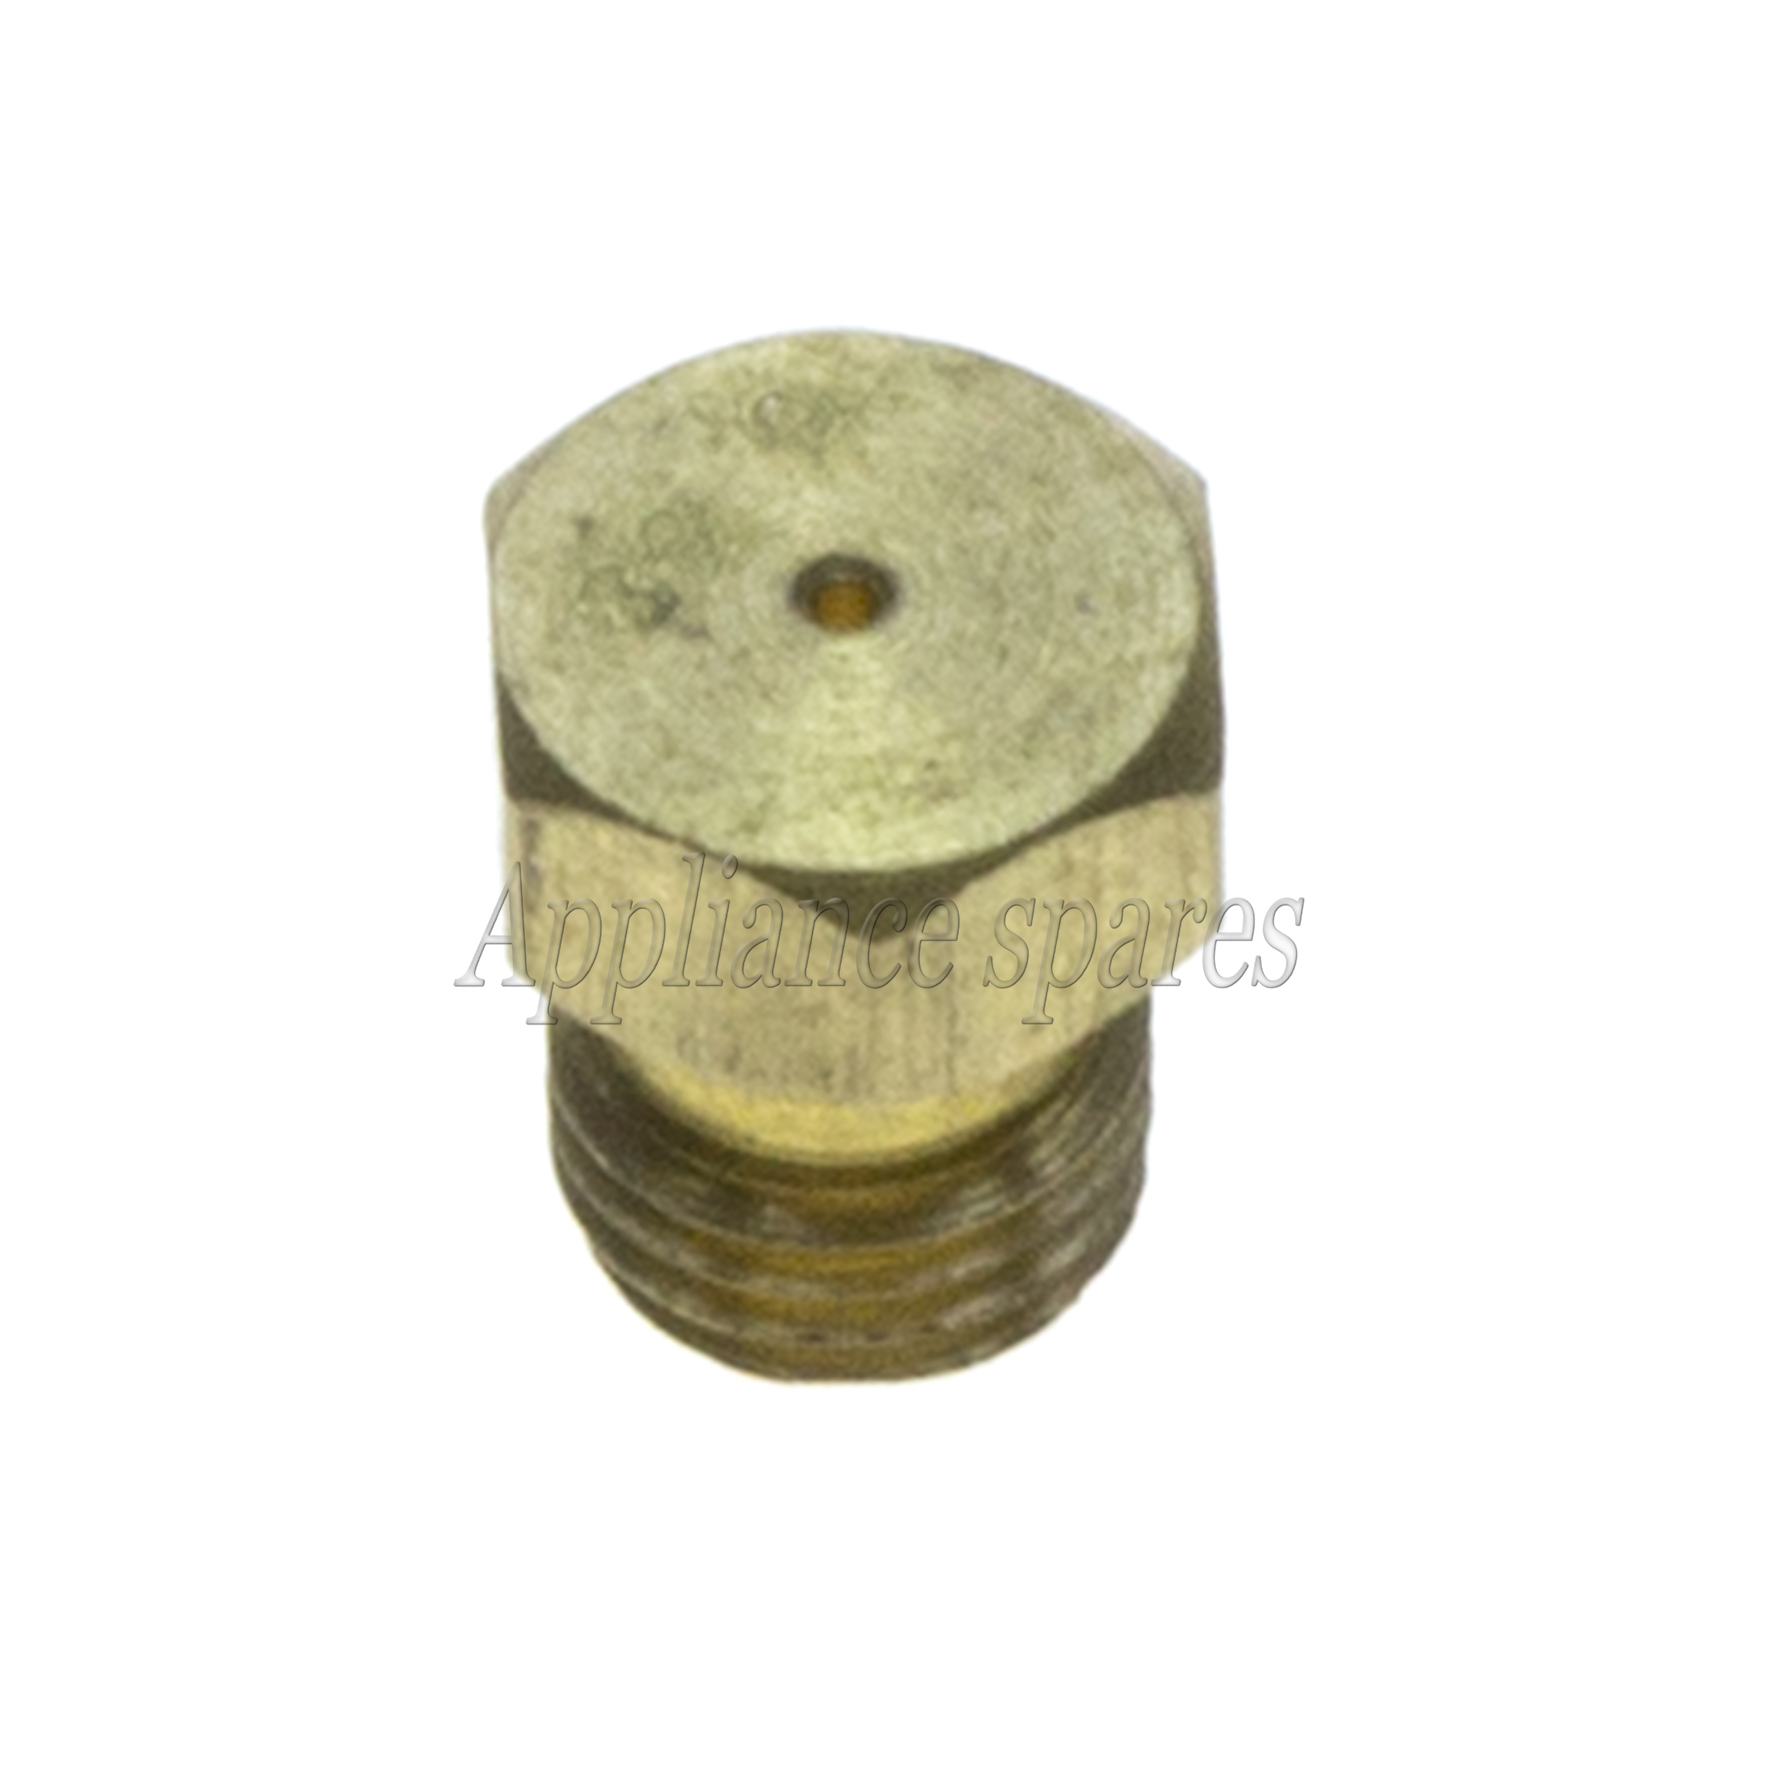 ARDA OVEN GAS/ELECTRIC STOVE BURNER JETS: LEFT AND RIGHT 0.68mm ...